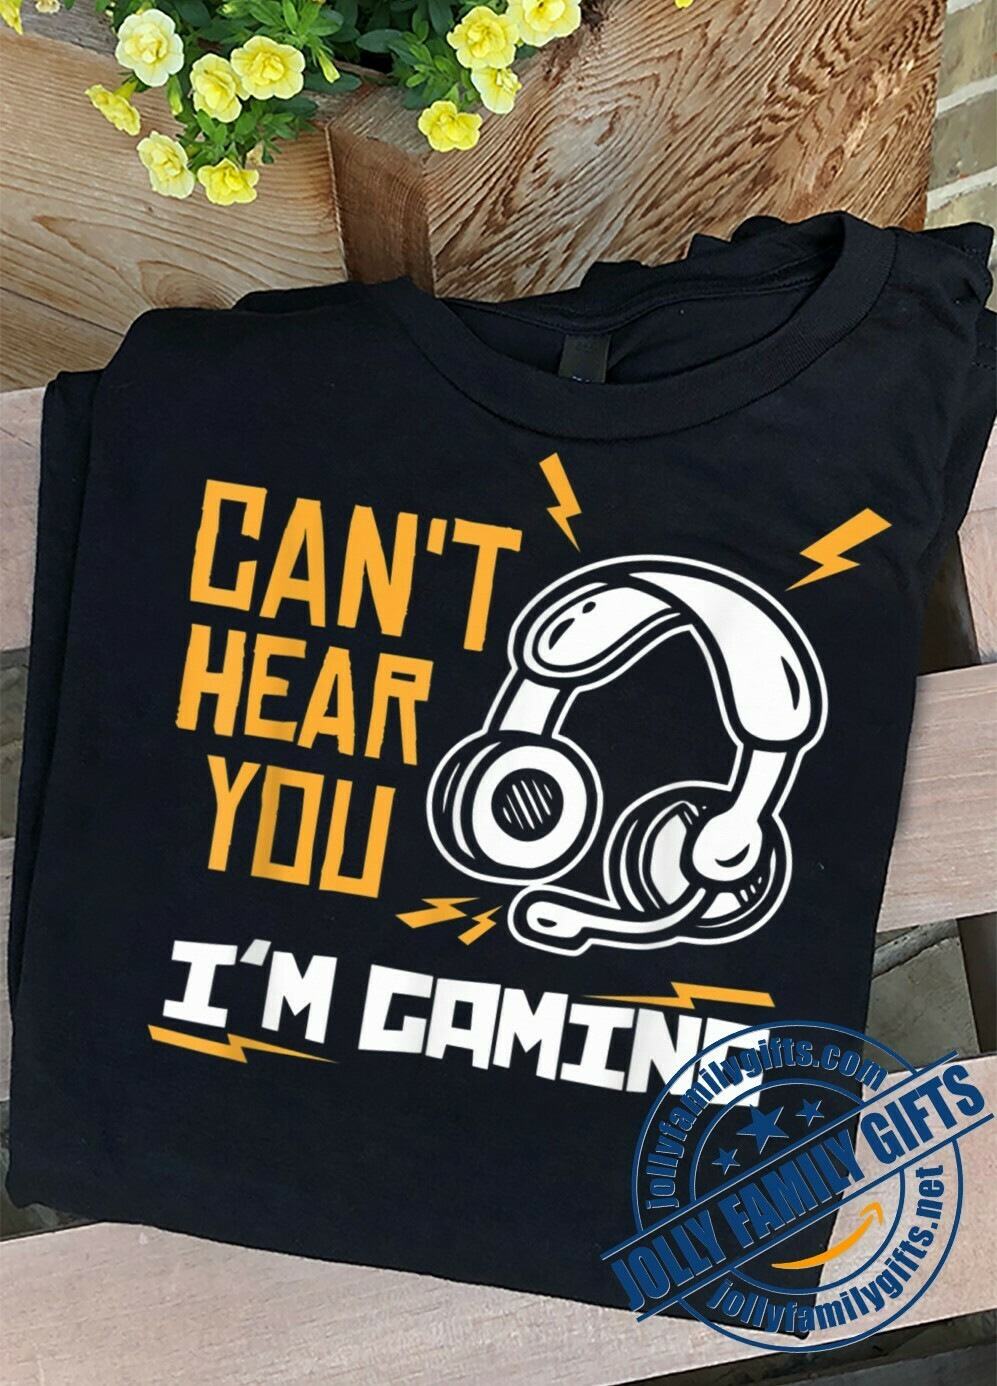 Can't hear you I'm Gaming Headphone Funny Gaming Gamer Video Games Gift for Dad Mom Game lovers Unisex T-Shirt Hoodie Sweatshirt Sweater Plus Size for Ladies Women Men Kids Youth Gifts Tee Jolly